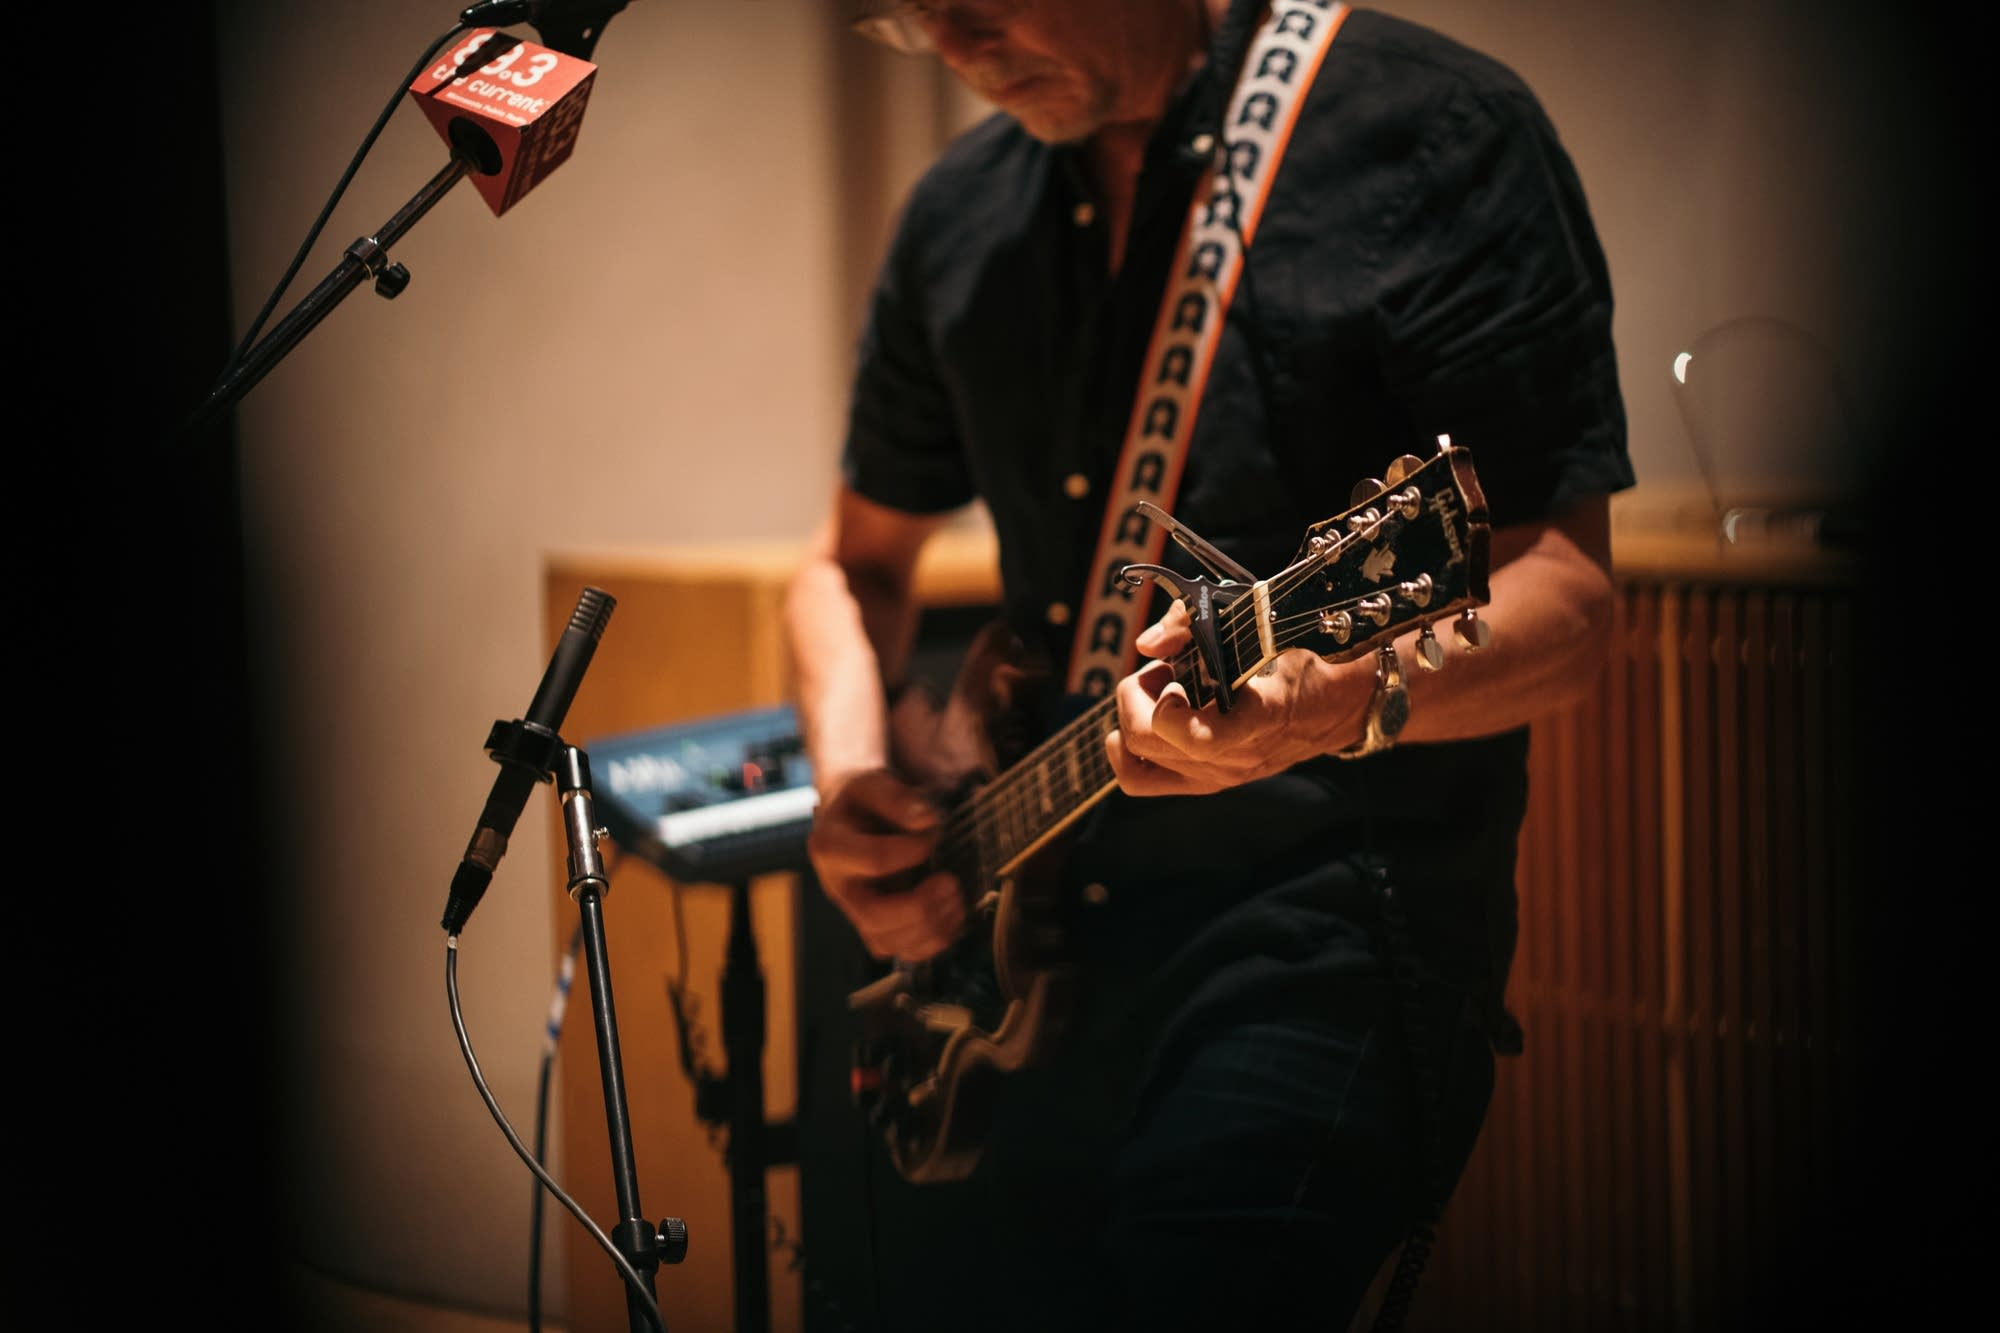 The Jayhawks perform in The Current studio